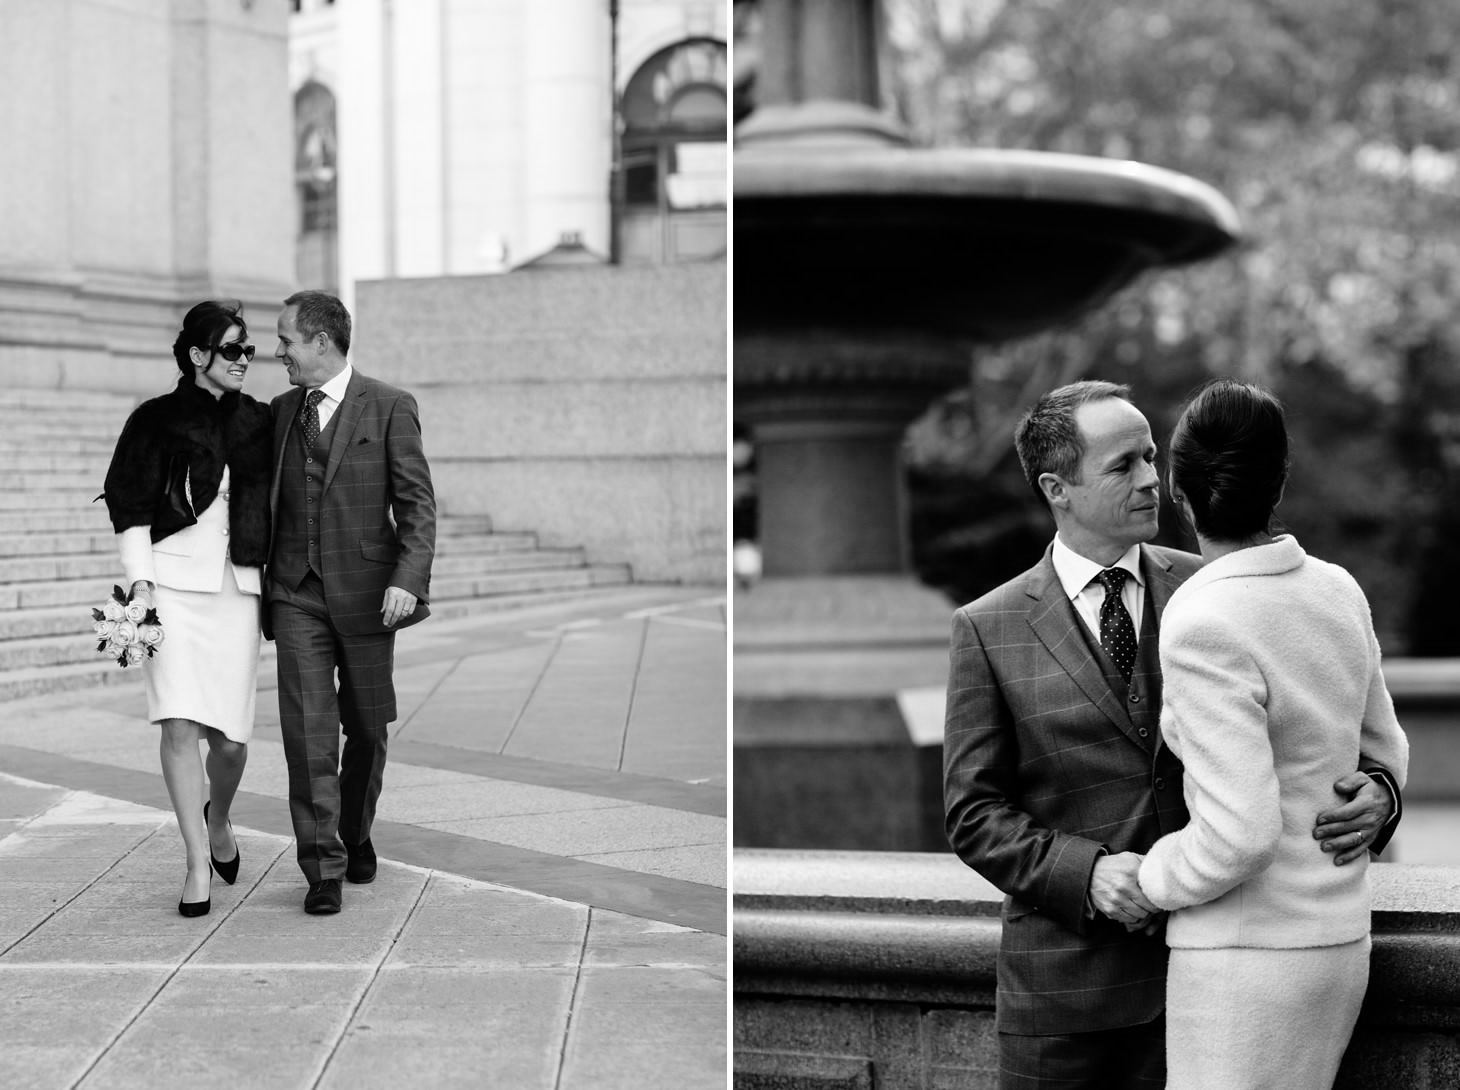 nyc-authentic-emotional-wedding-photography-elopement-smitten-chickens-photo23.jpg